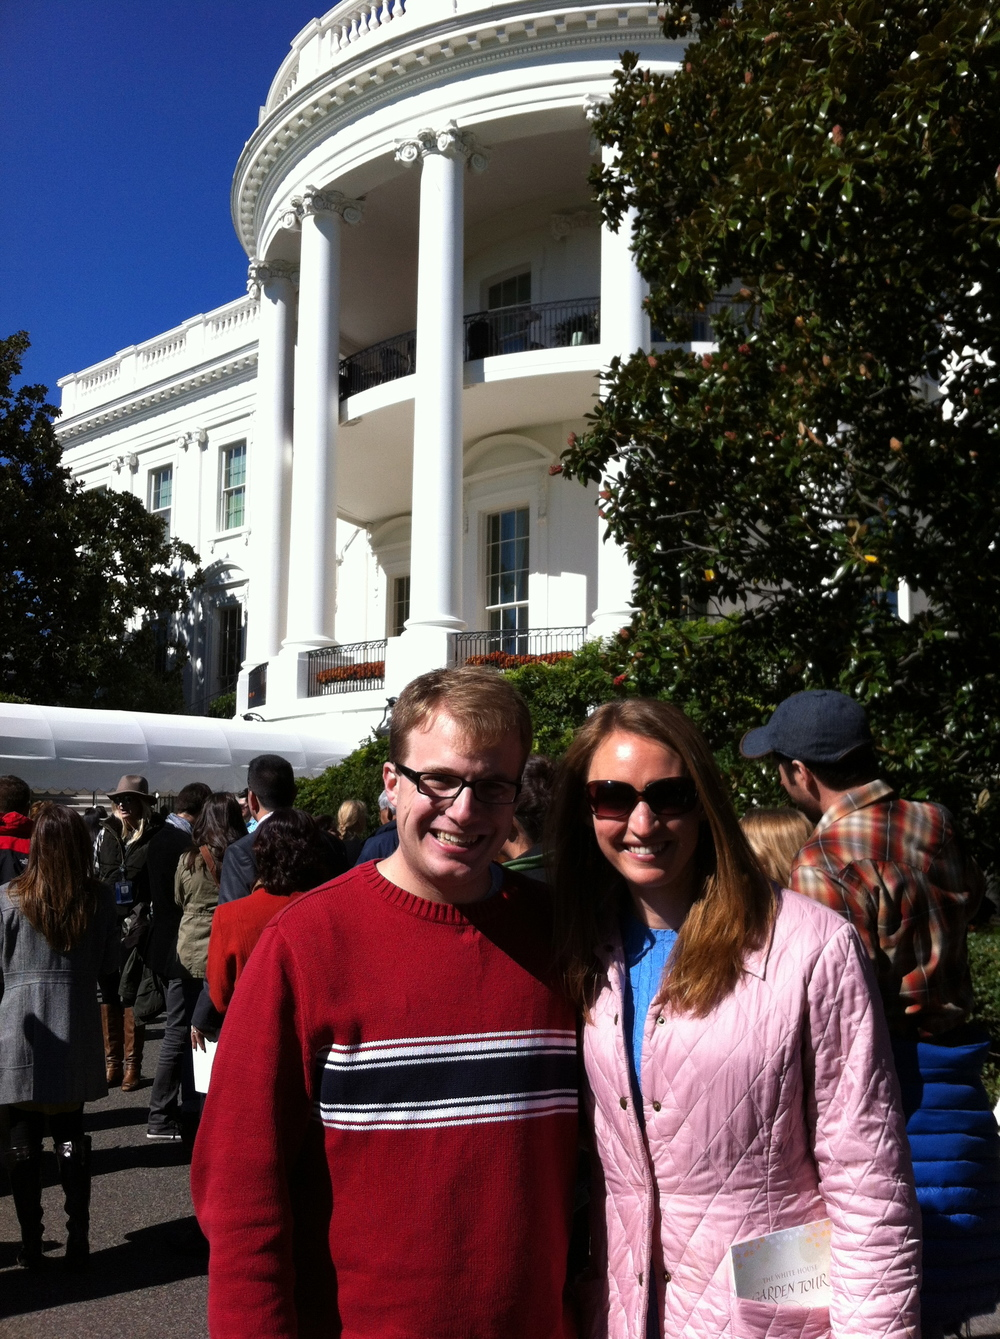 Hanging out at the White House Gardens.